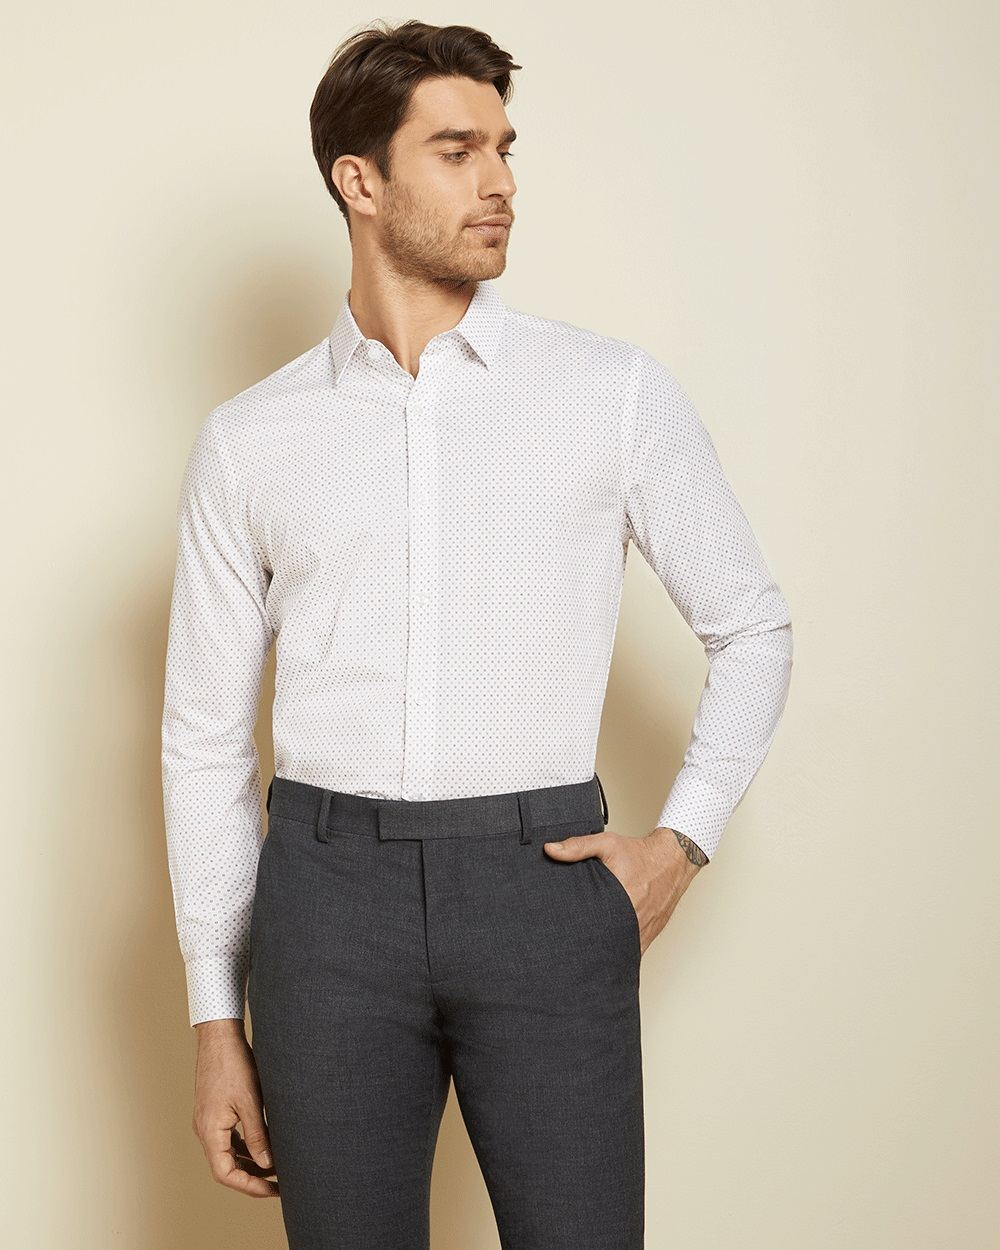 Athletic Fit Geo white Dress Shirt